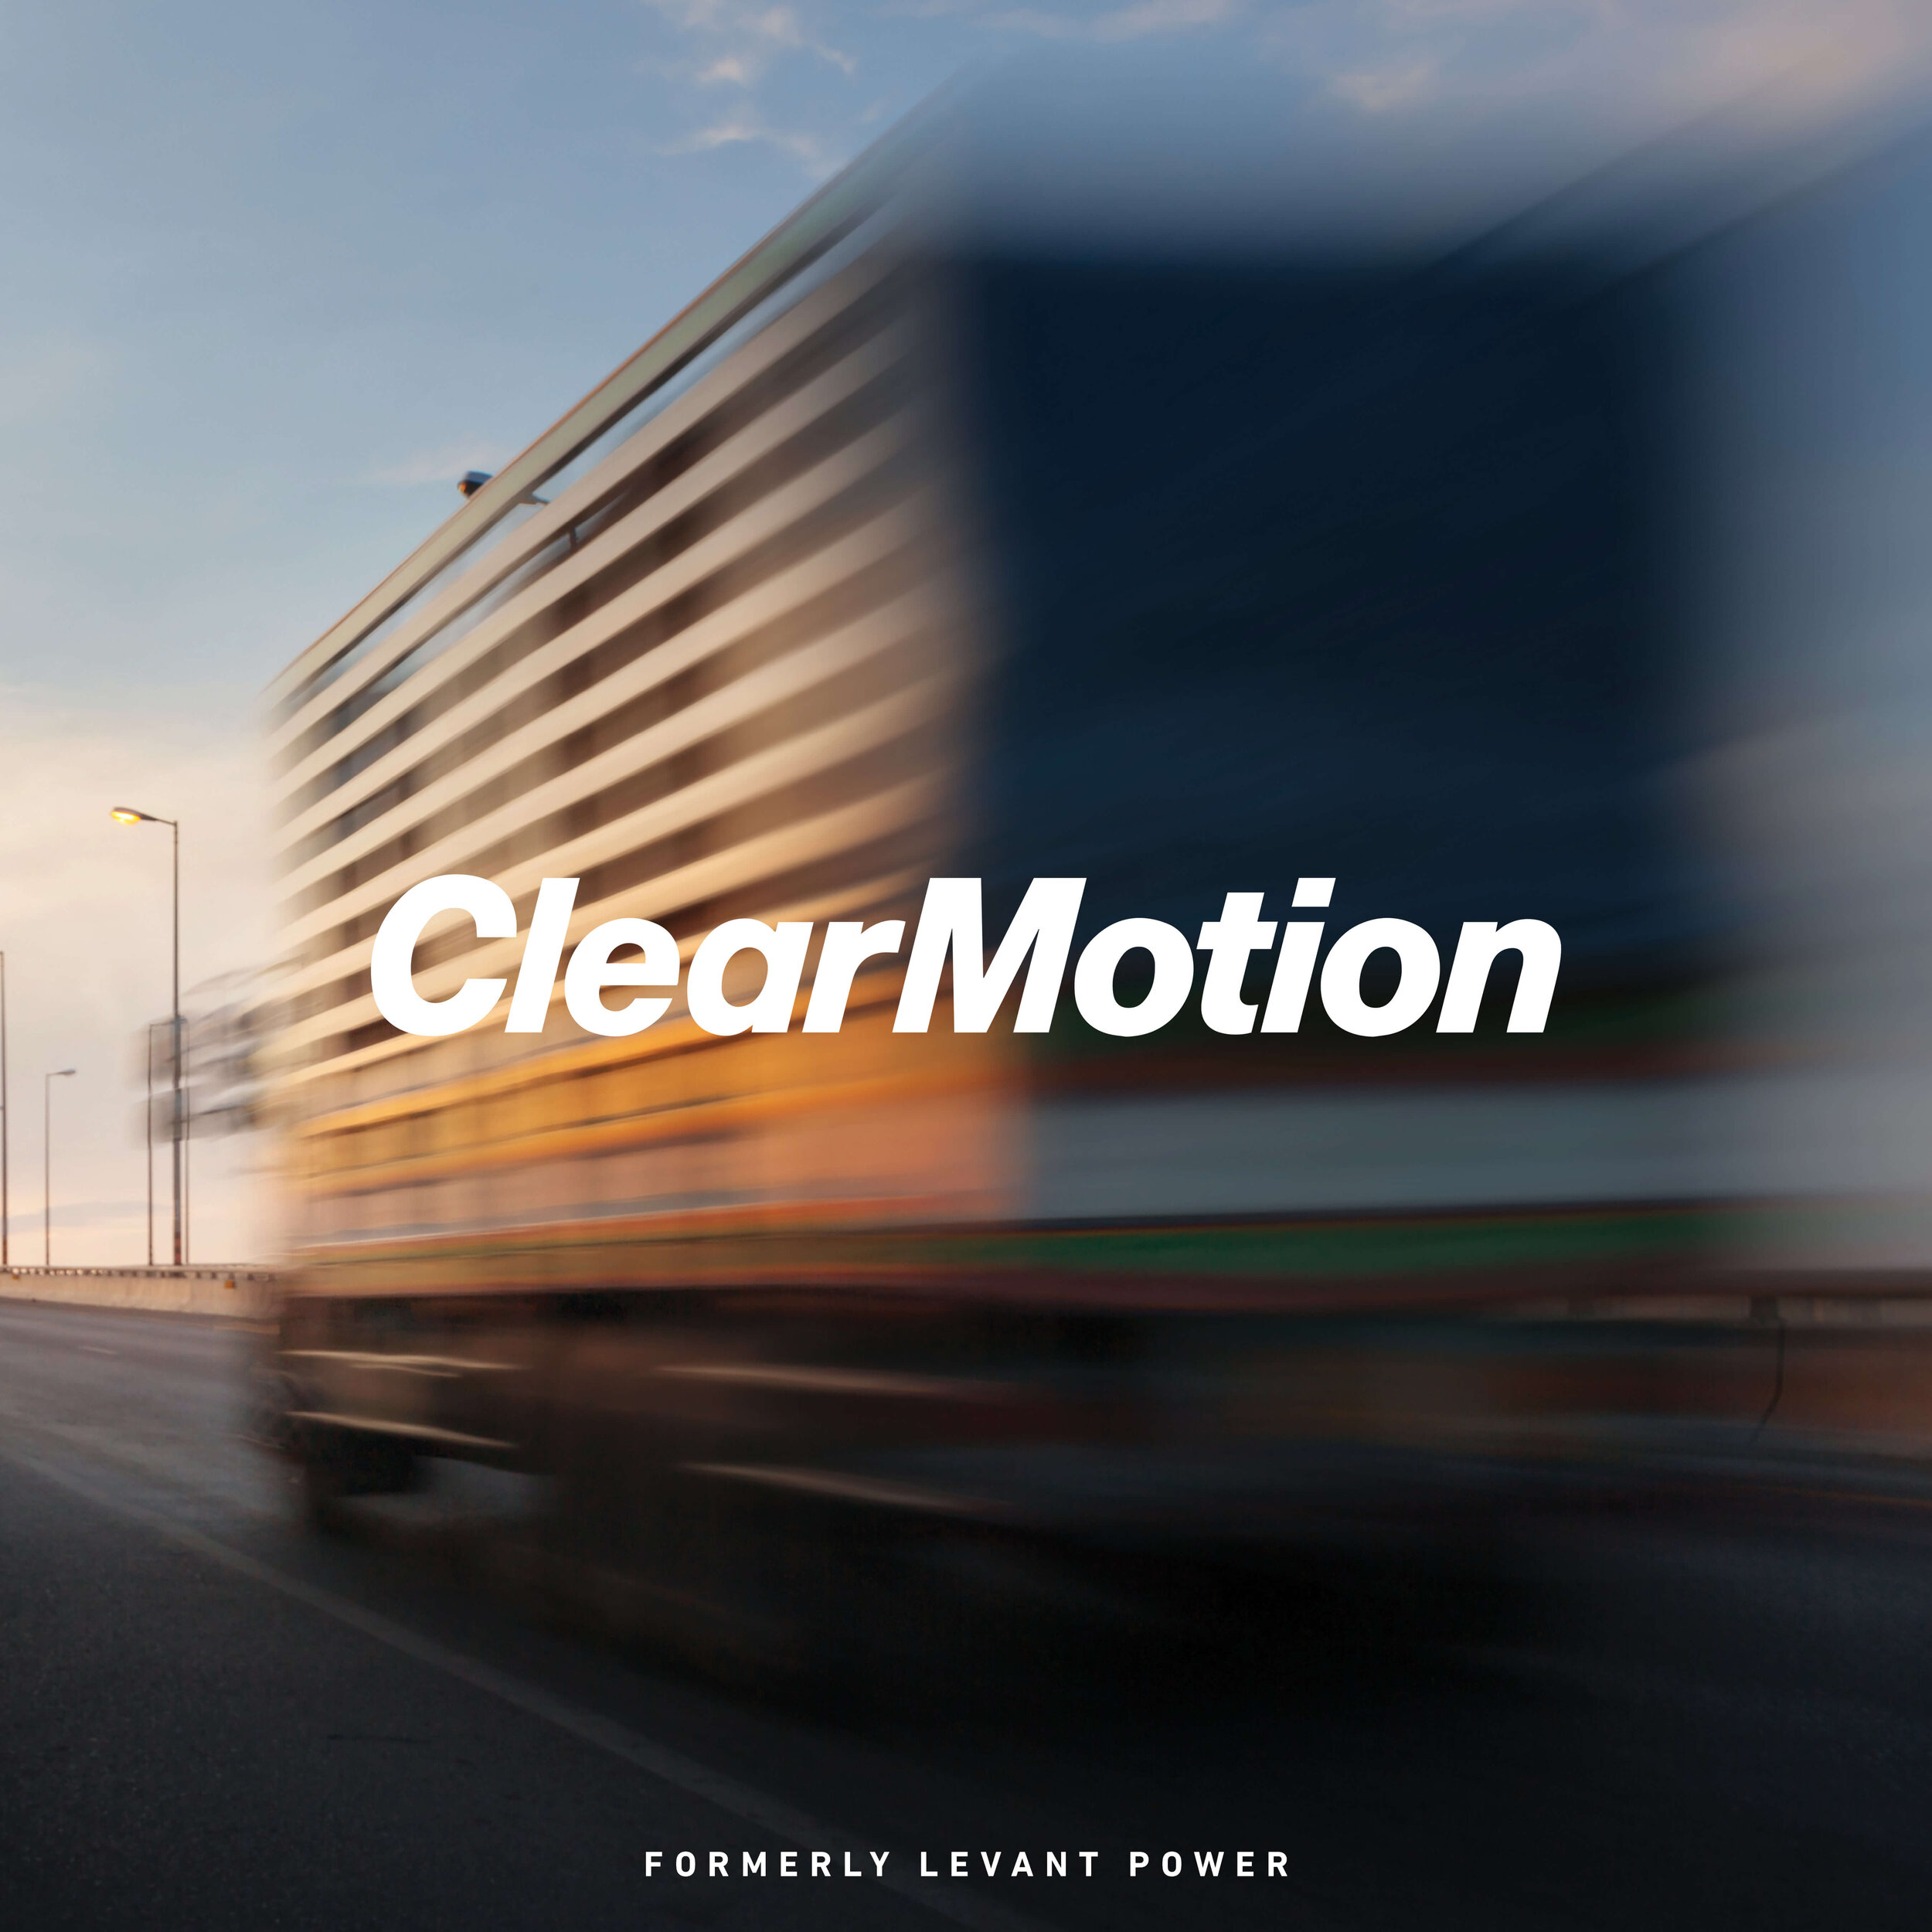 ClearMotion_credential.jpg